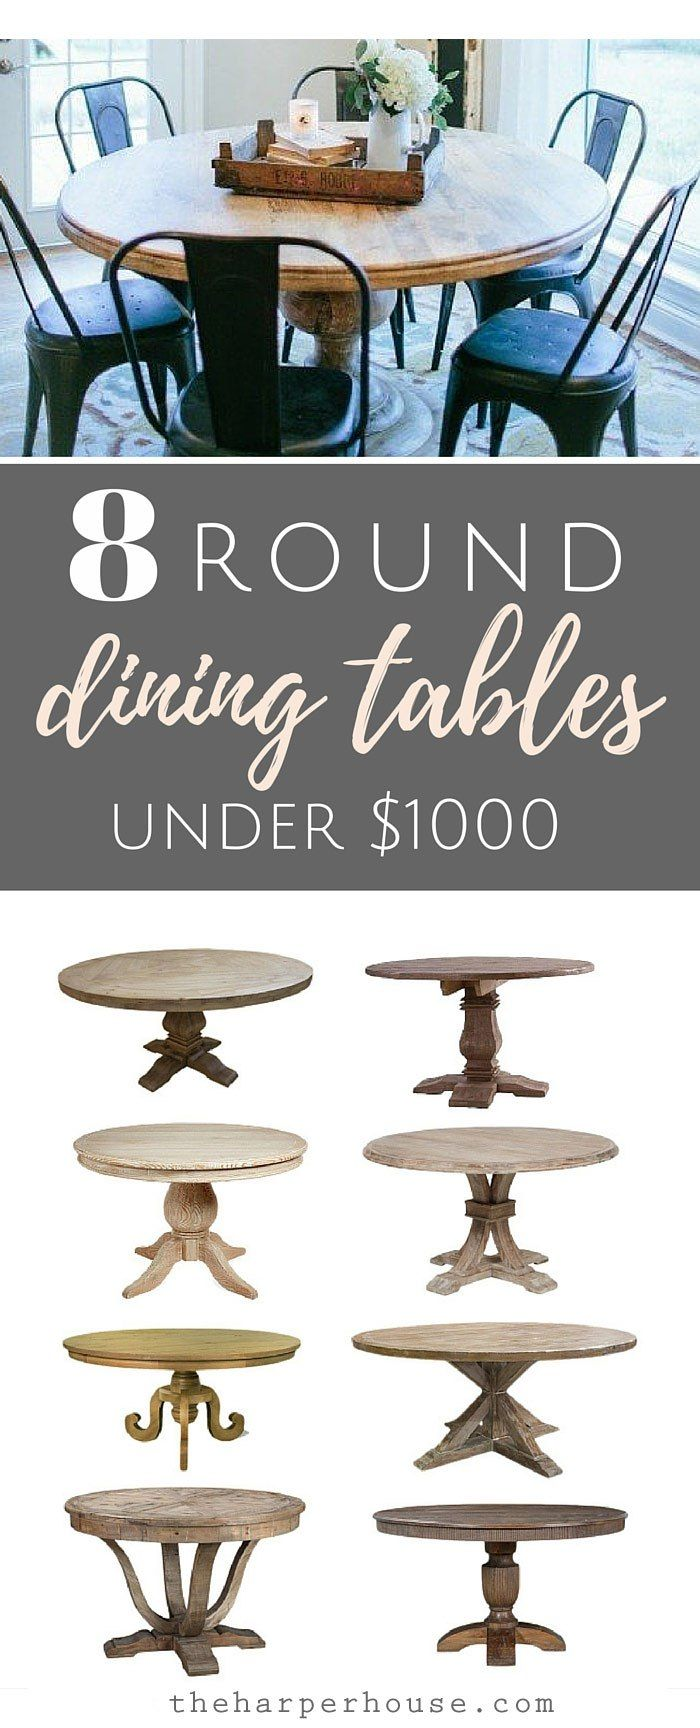 round dining tables round kitchen table Fixer Upper round dining tables and where to find affordable options for under theharperhouse